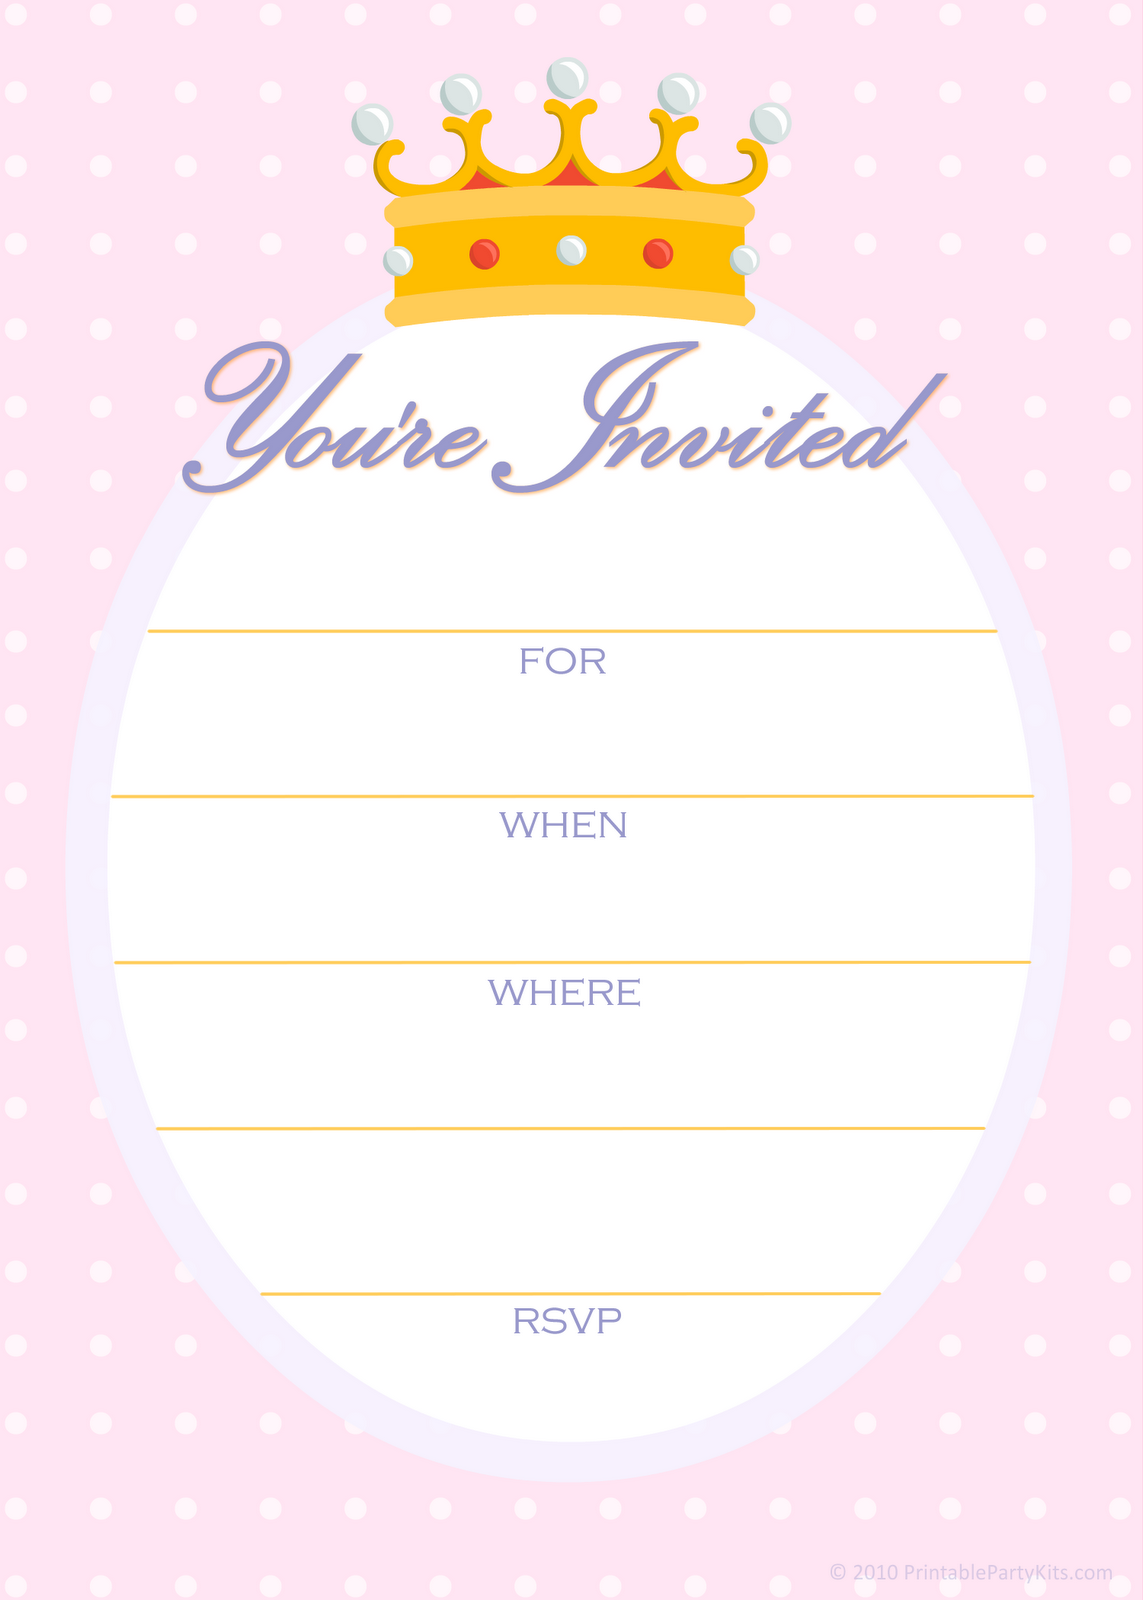 Free printable party invitations free invitations for a princess free printable party invitations free invitations for a princess birthday party filmwisefo Image collections